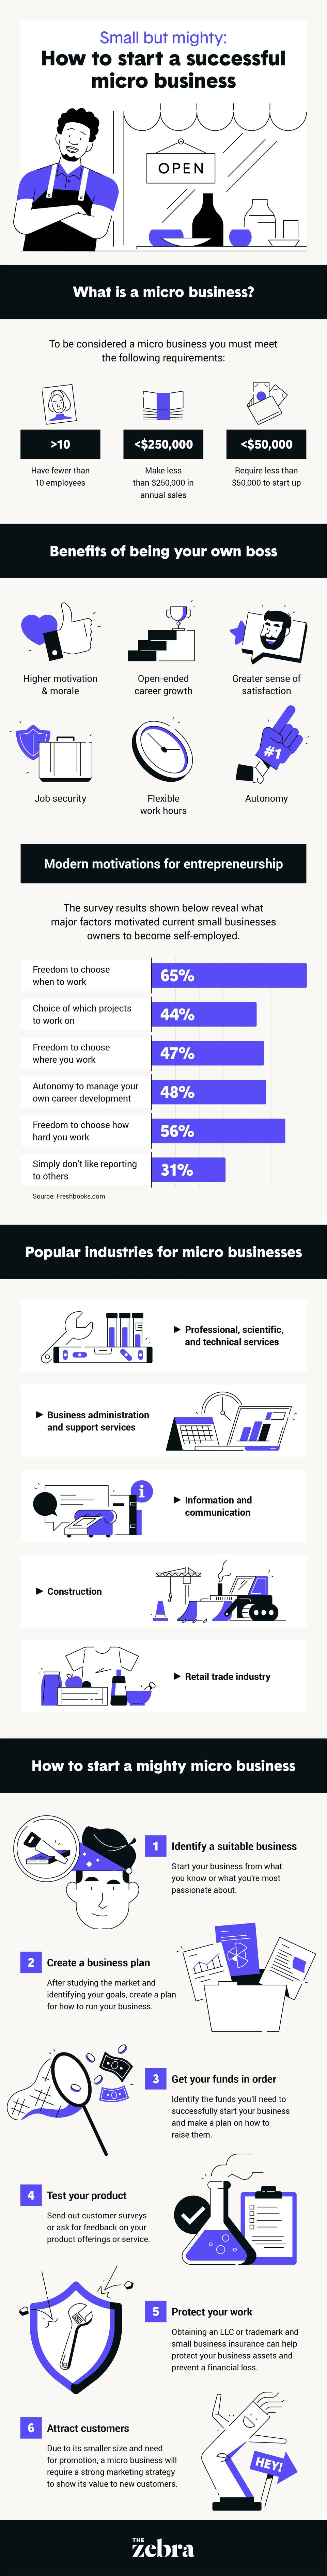 how-to-start-a-micro-business